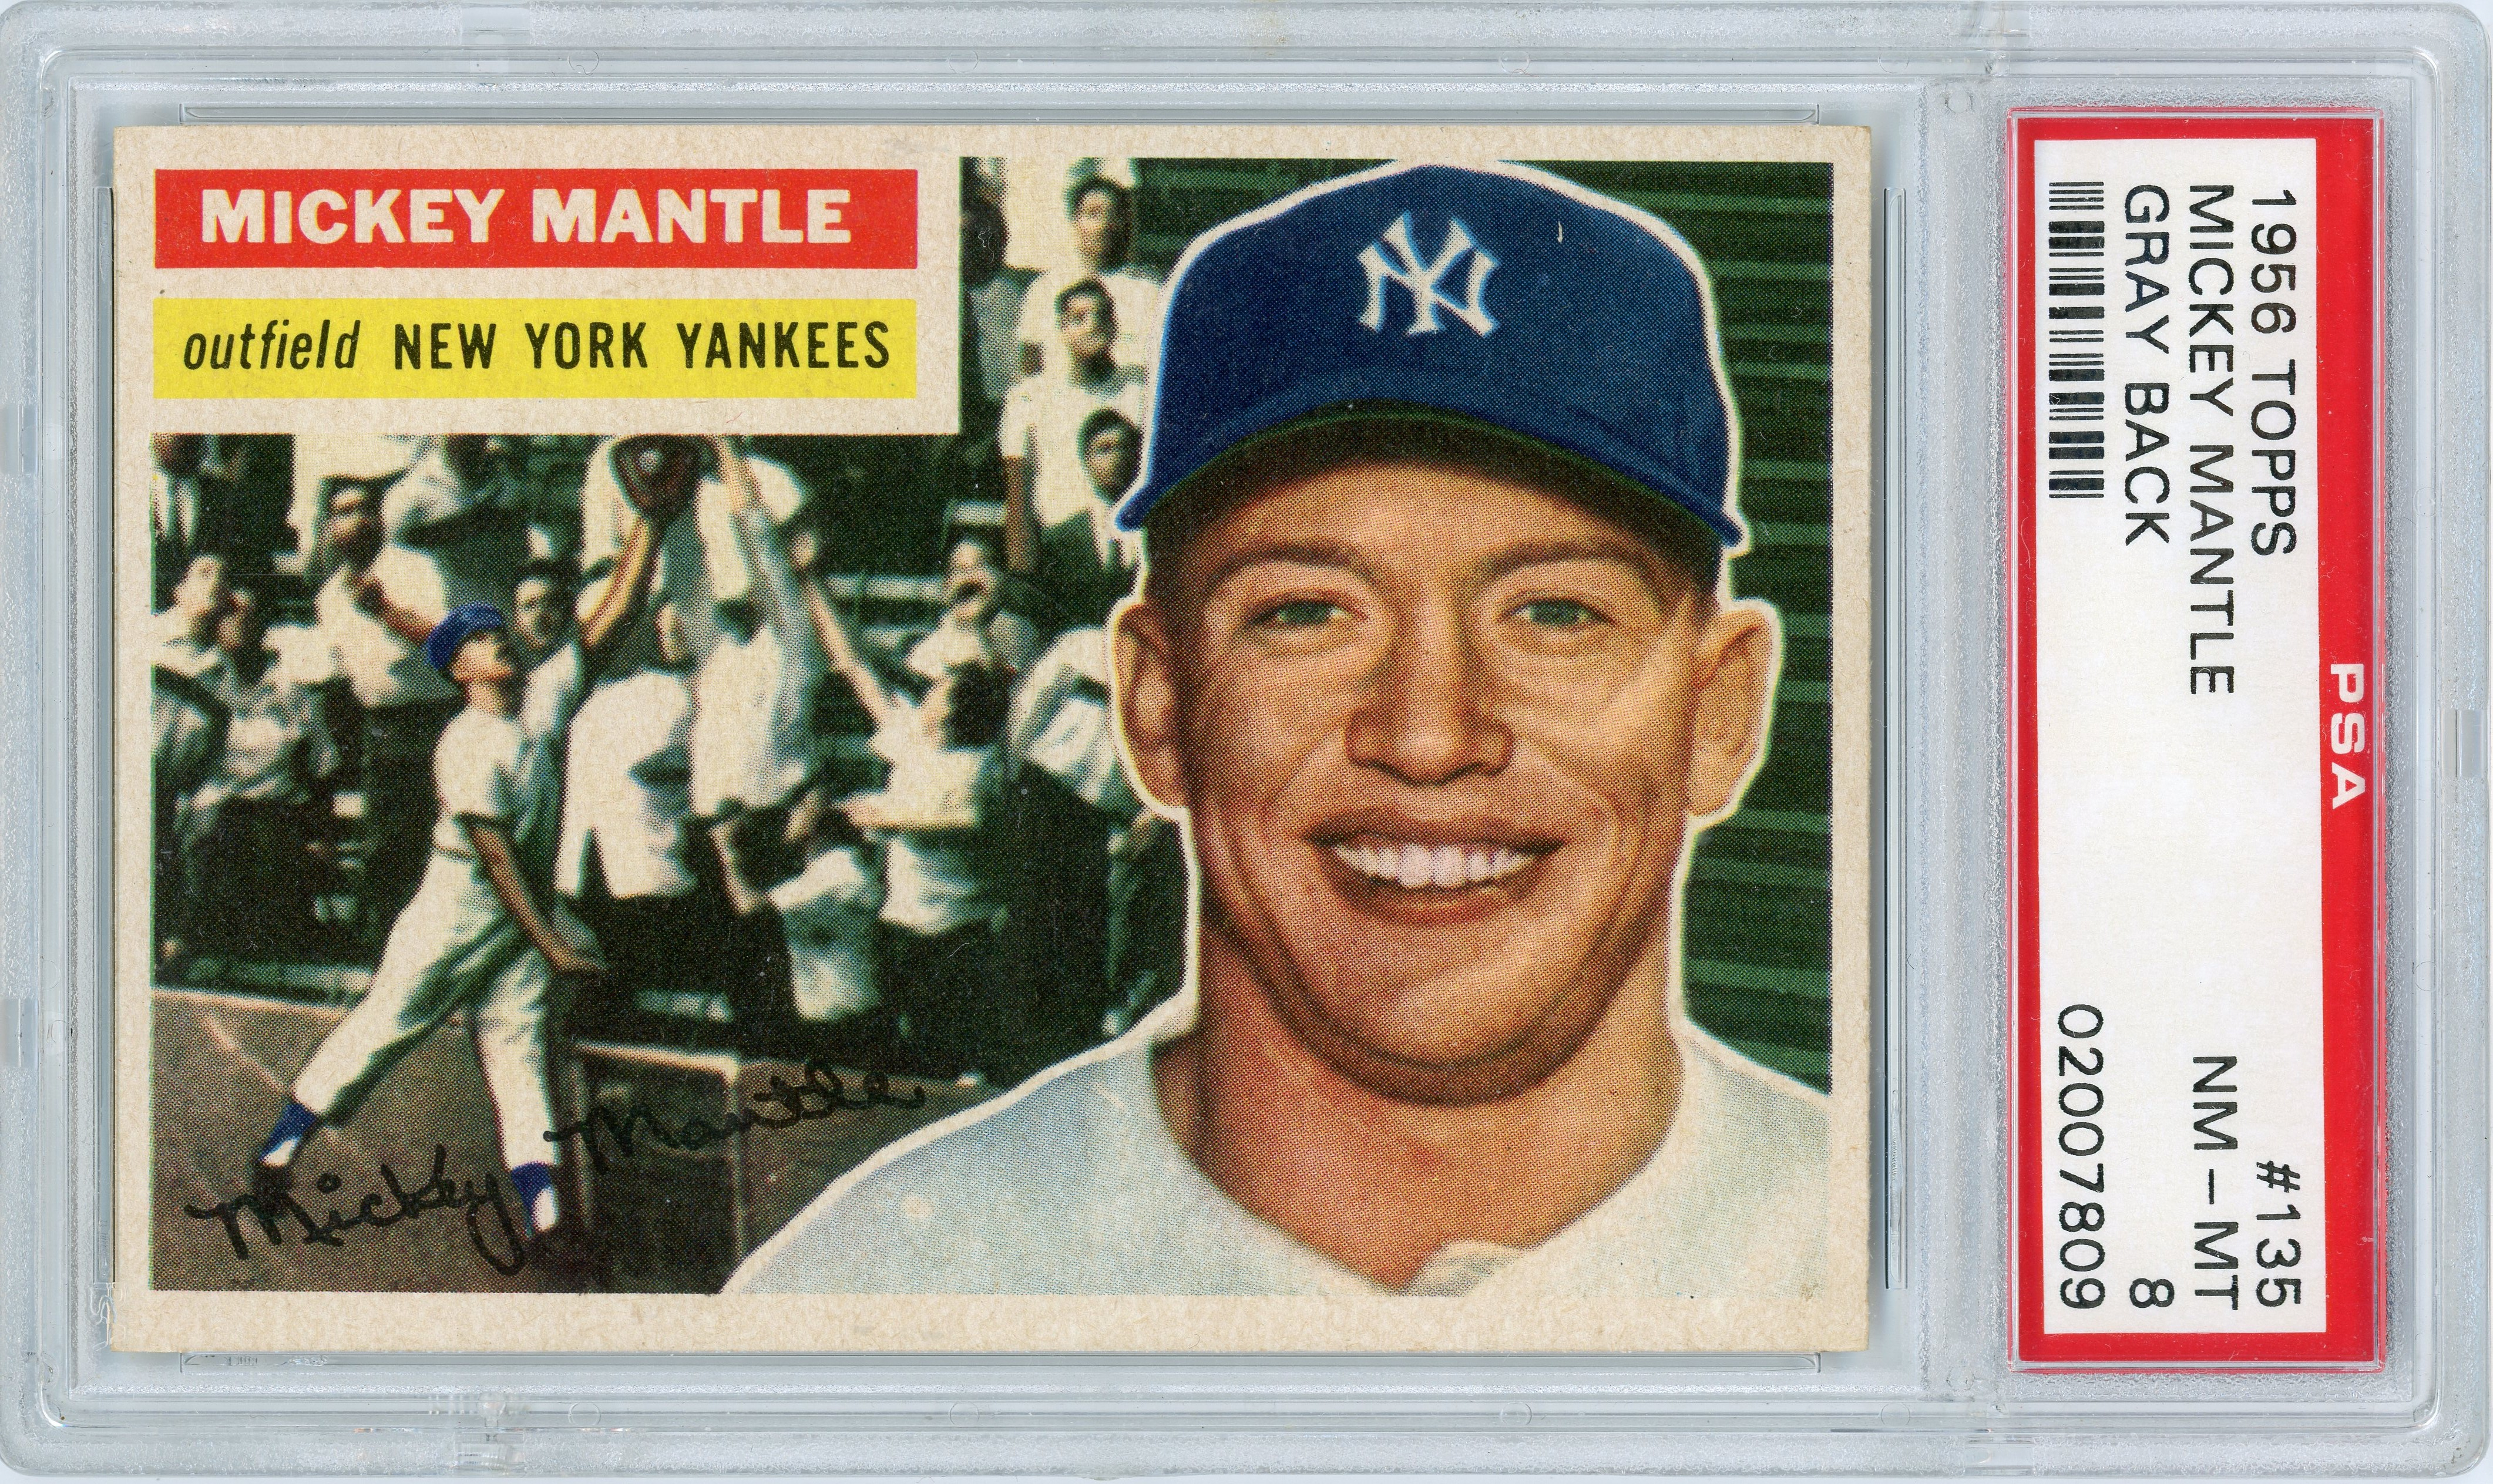 Trade My 1956 Topps Psa 8 Mantle For Your 1953 Topps Psa 8 Jackie